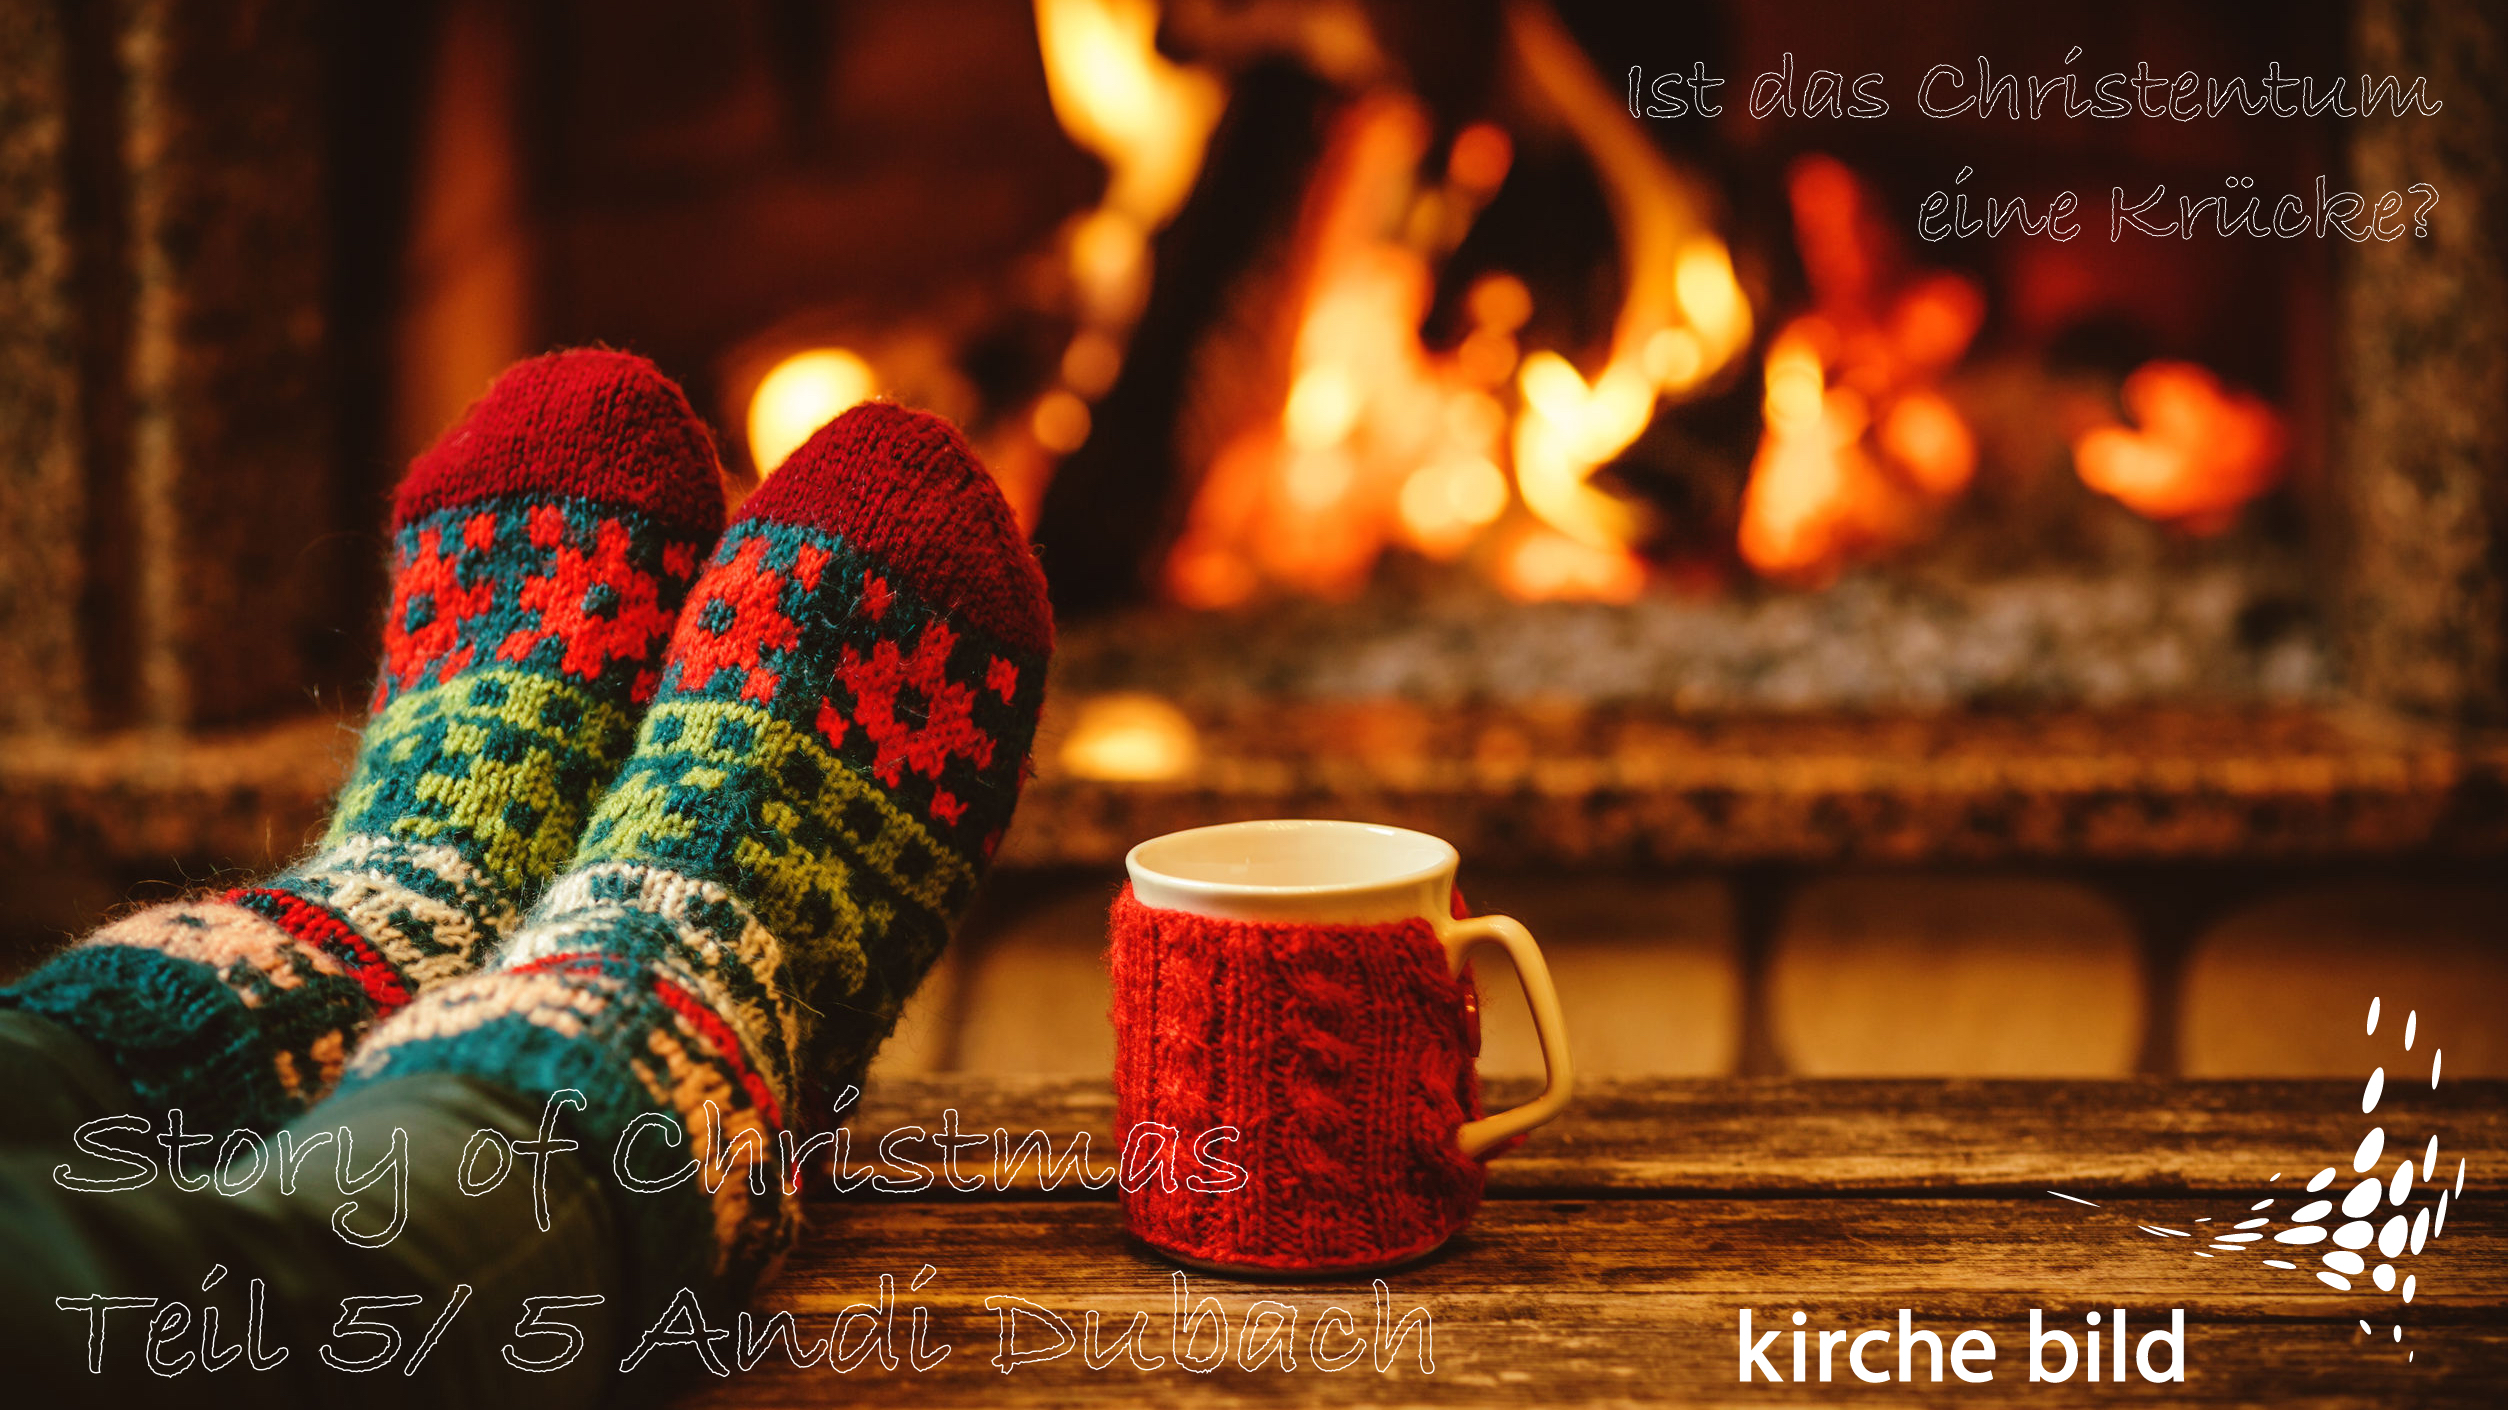 46927077 - feet in woollen socks by the christmas fireplace. woman relaxes by warm fire with a cup of hot drink and warming up her feet in woollen socks. close up on feet. winter and christmas holidays concept.